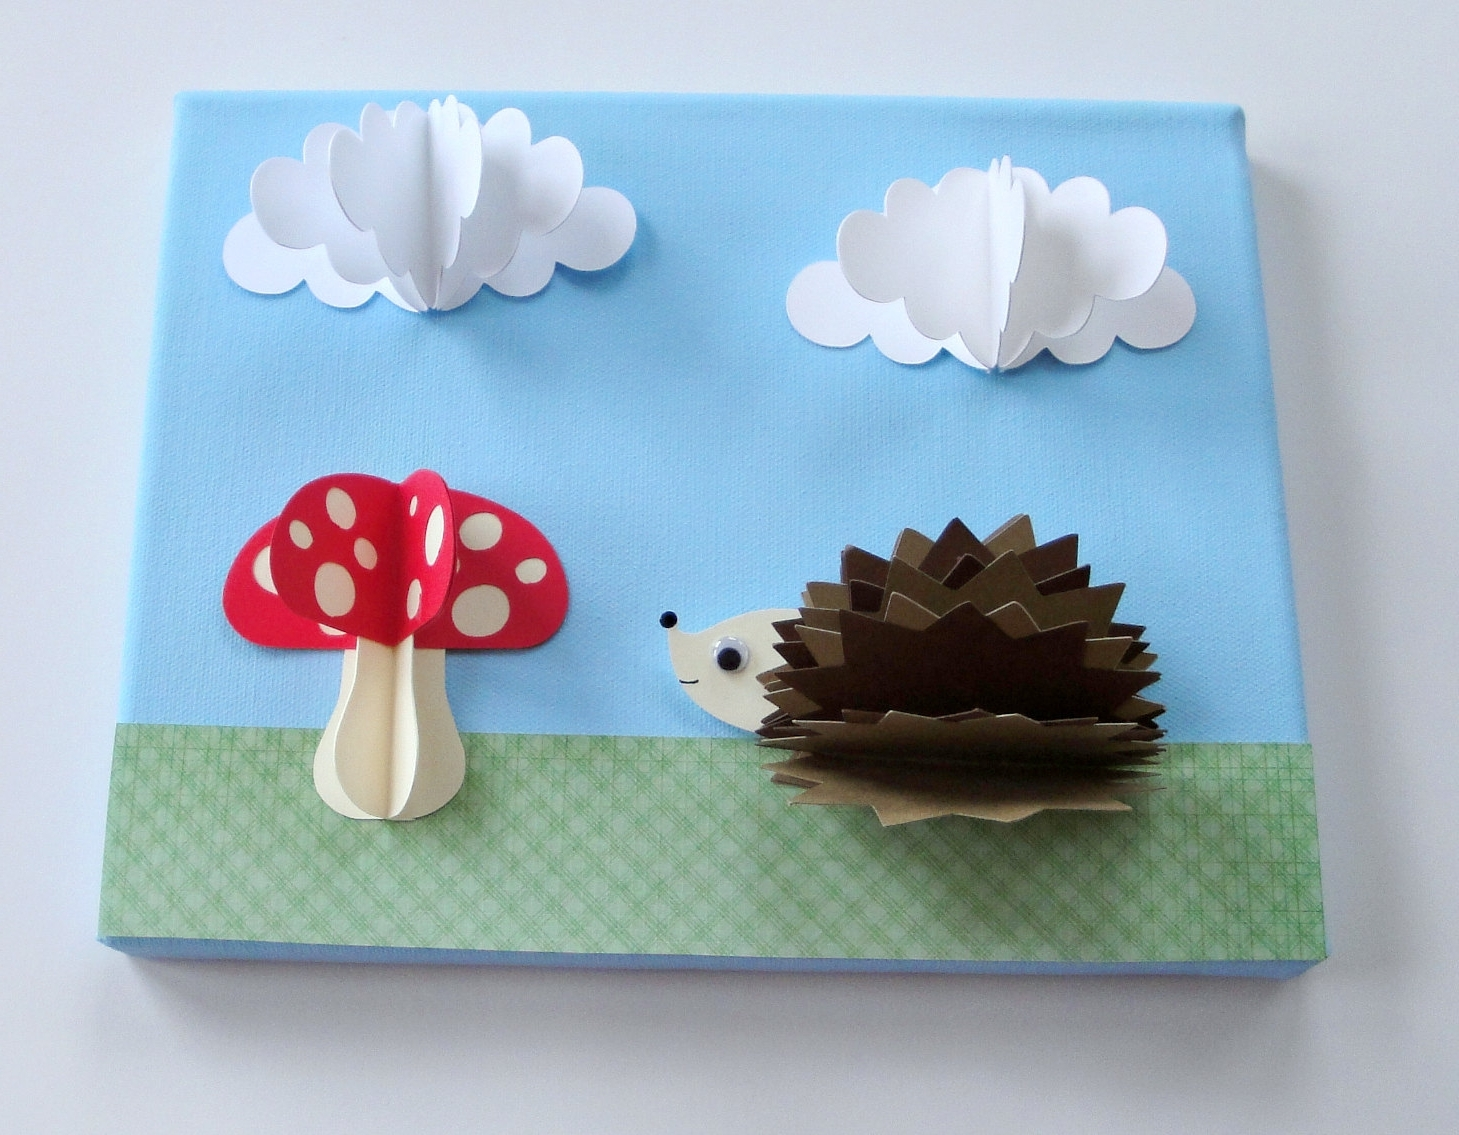 Original Hedgehog And Mushroom 3D Paper Wall Art On 8 X 10 Canvas In Fashionable 3D Clouds Out Of Paper Wall Art (View 11 of 15)